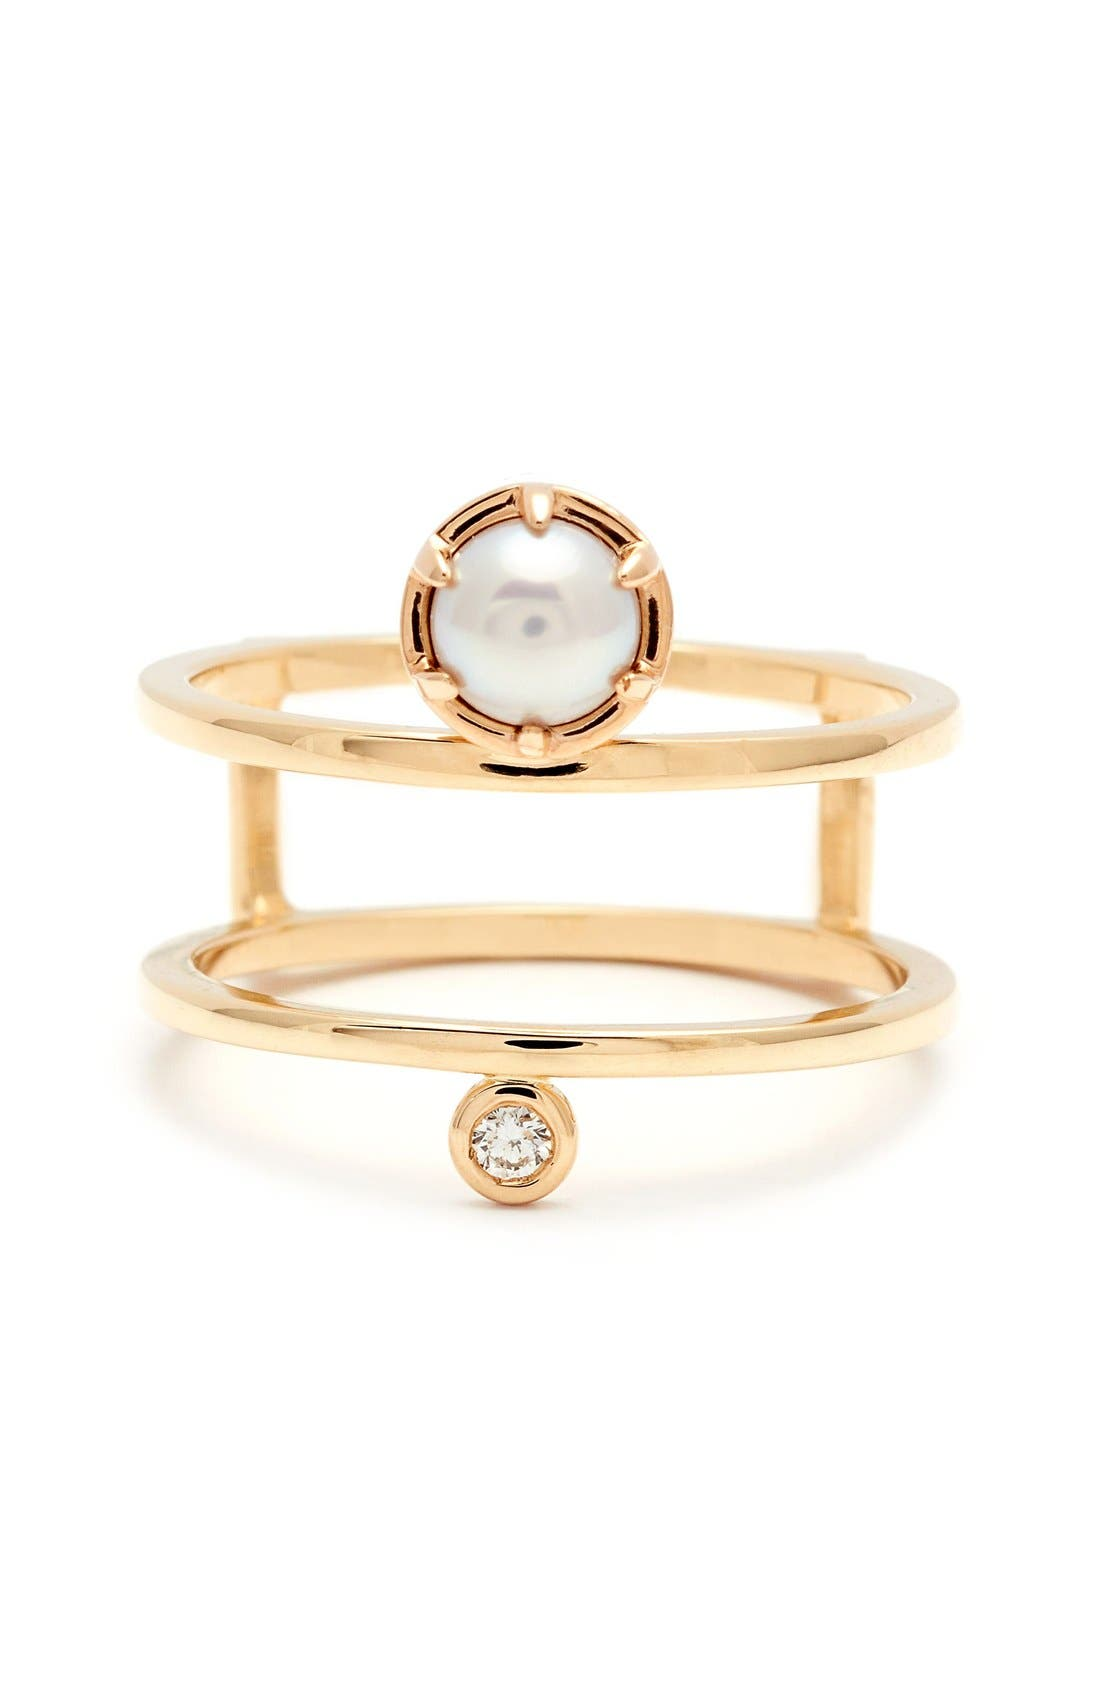 Alternate Image 1 Selected - Anna Sheffield 'Reverse Attelage' Double Band Pearl & Diamond Ring